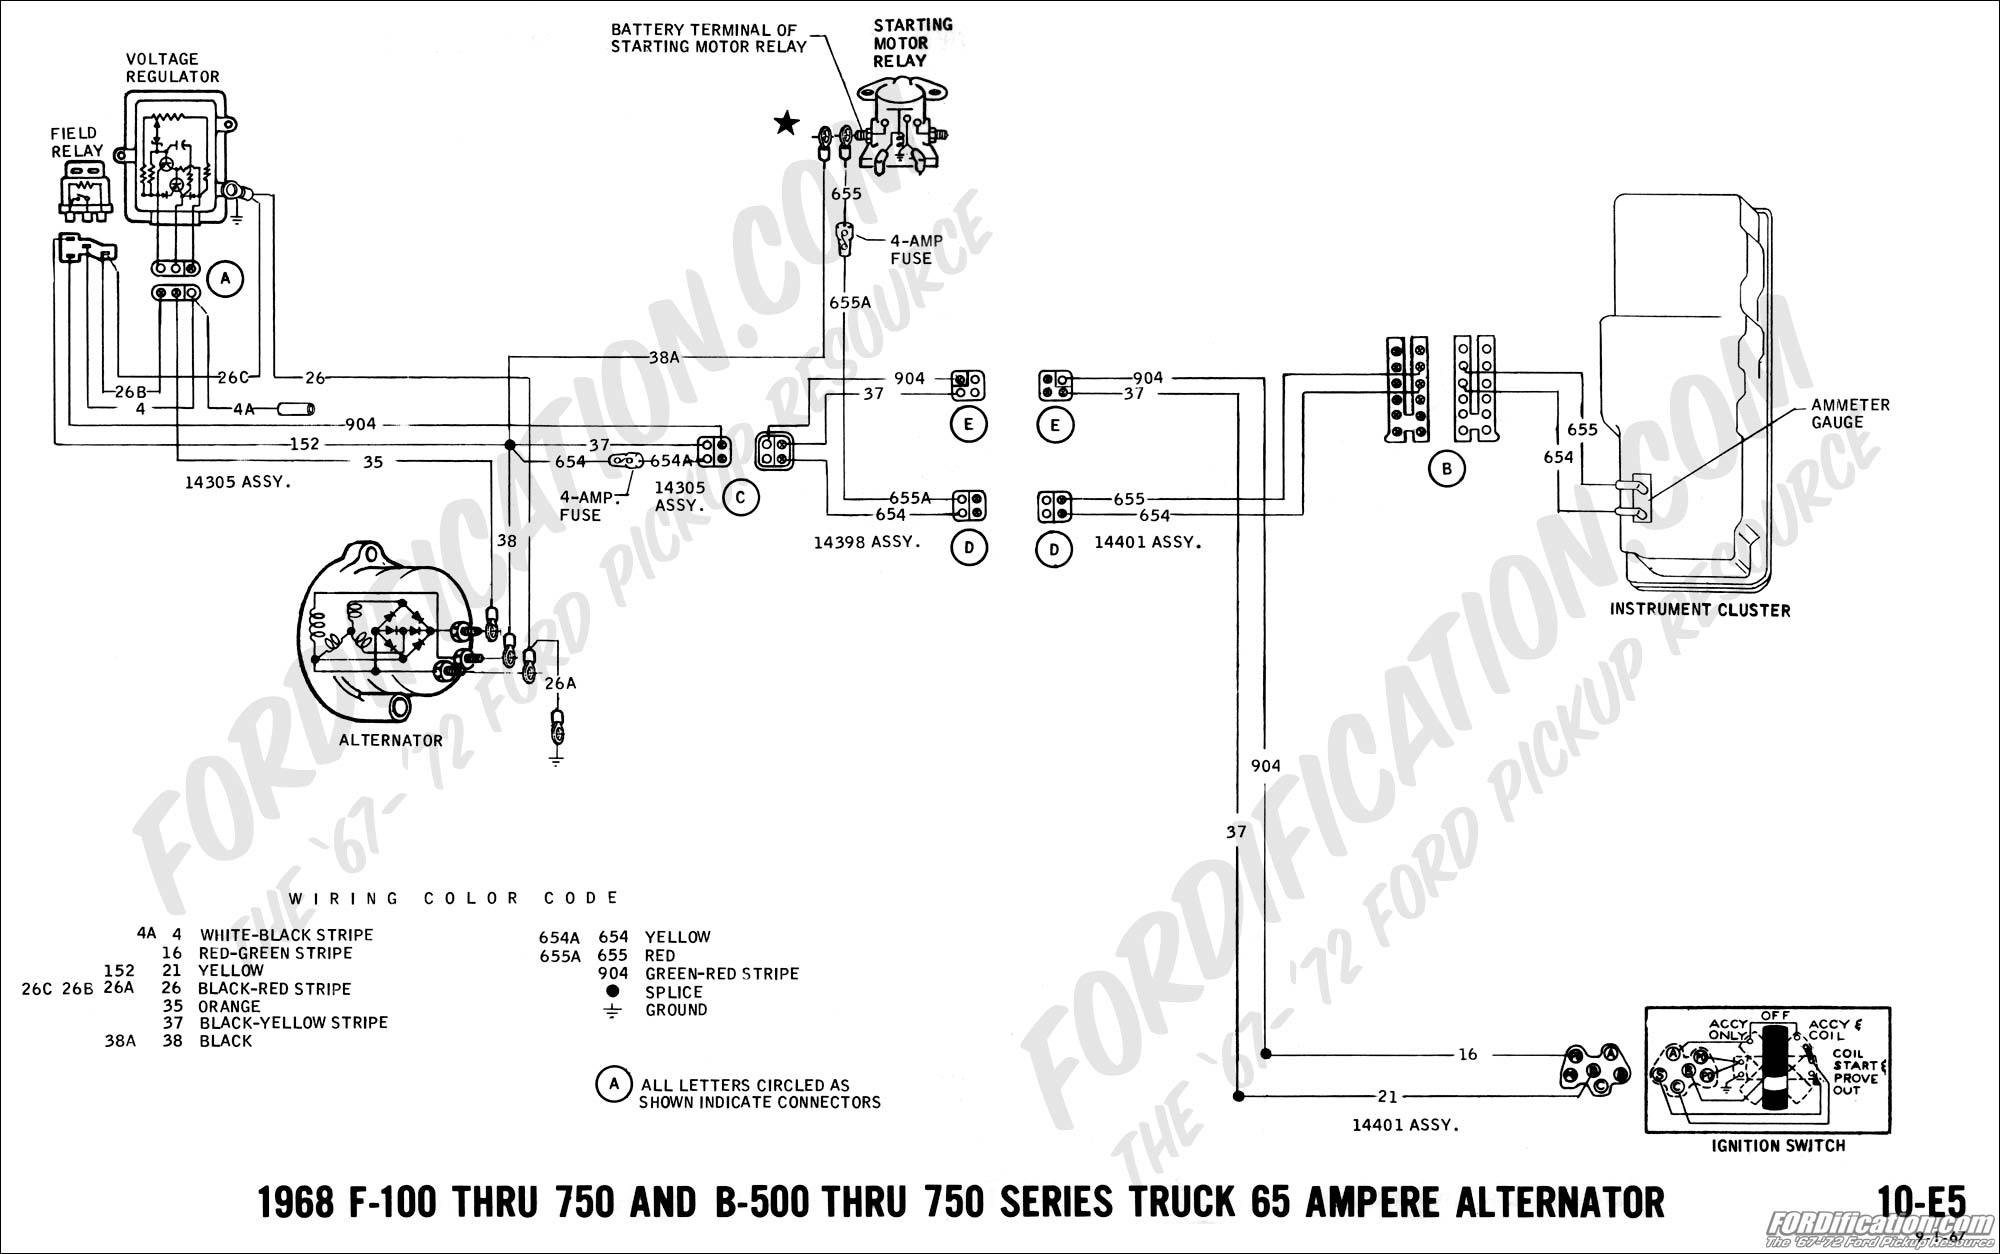 1988 Ford Alternator Wiring Diagram - All Wiring Diagram Data - One Wire Alternator Wiring Diagram Ford